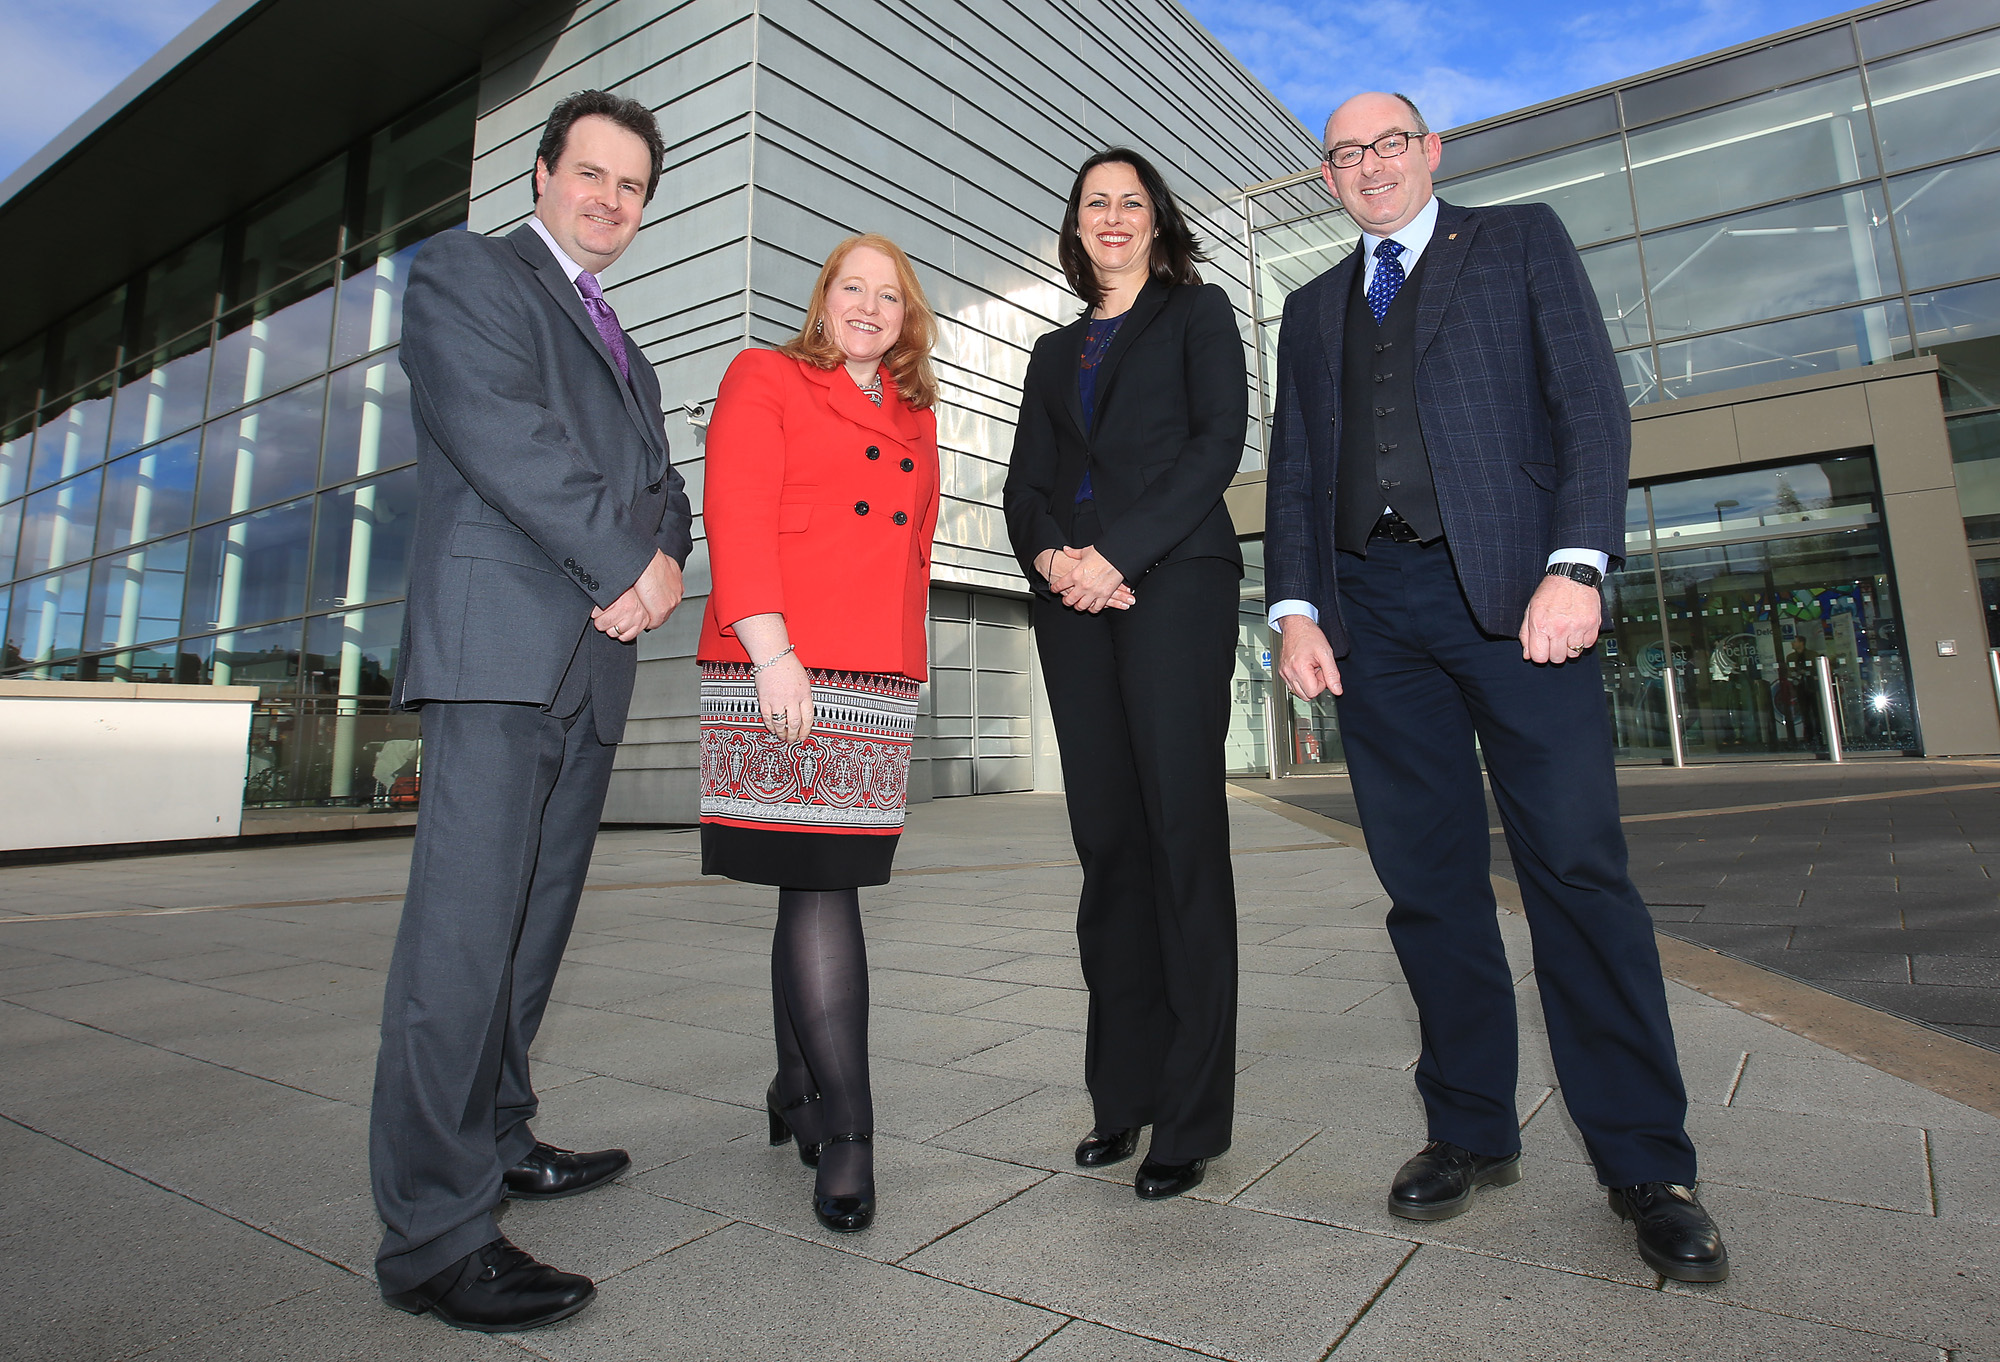 Belfast MET E3, One City Conference 'Lifting the City'. pictured: Dan McGinn (University of Ulster), Naomi Long MP (Alliance), Jennifer Harrison (QUB) and John D'Arcy (Open University) 95JC13